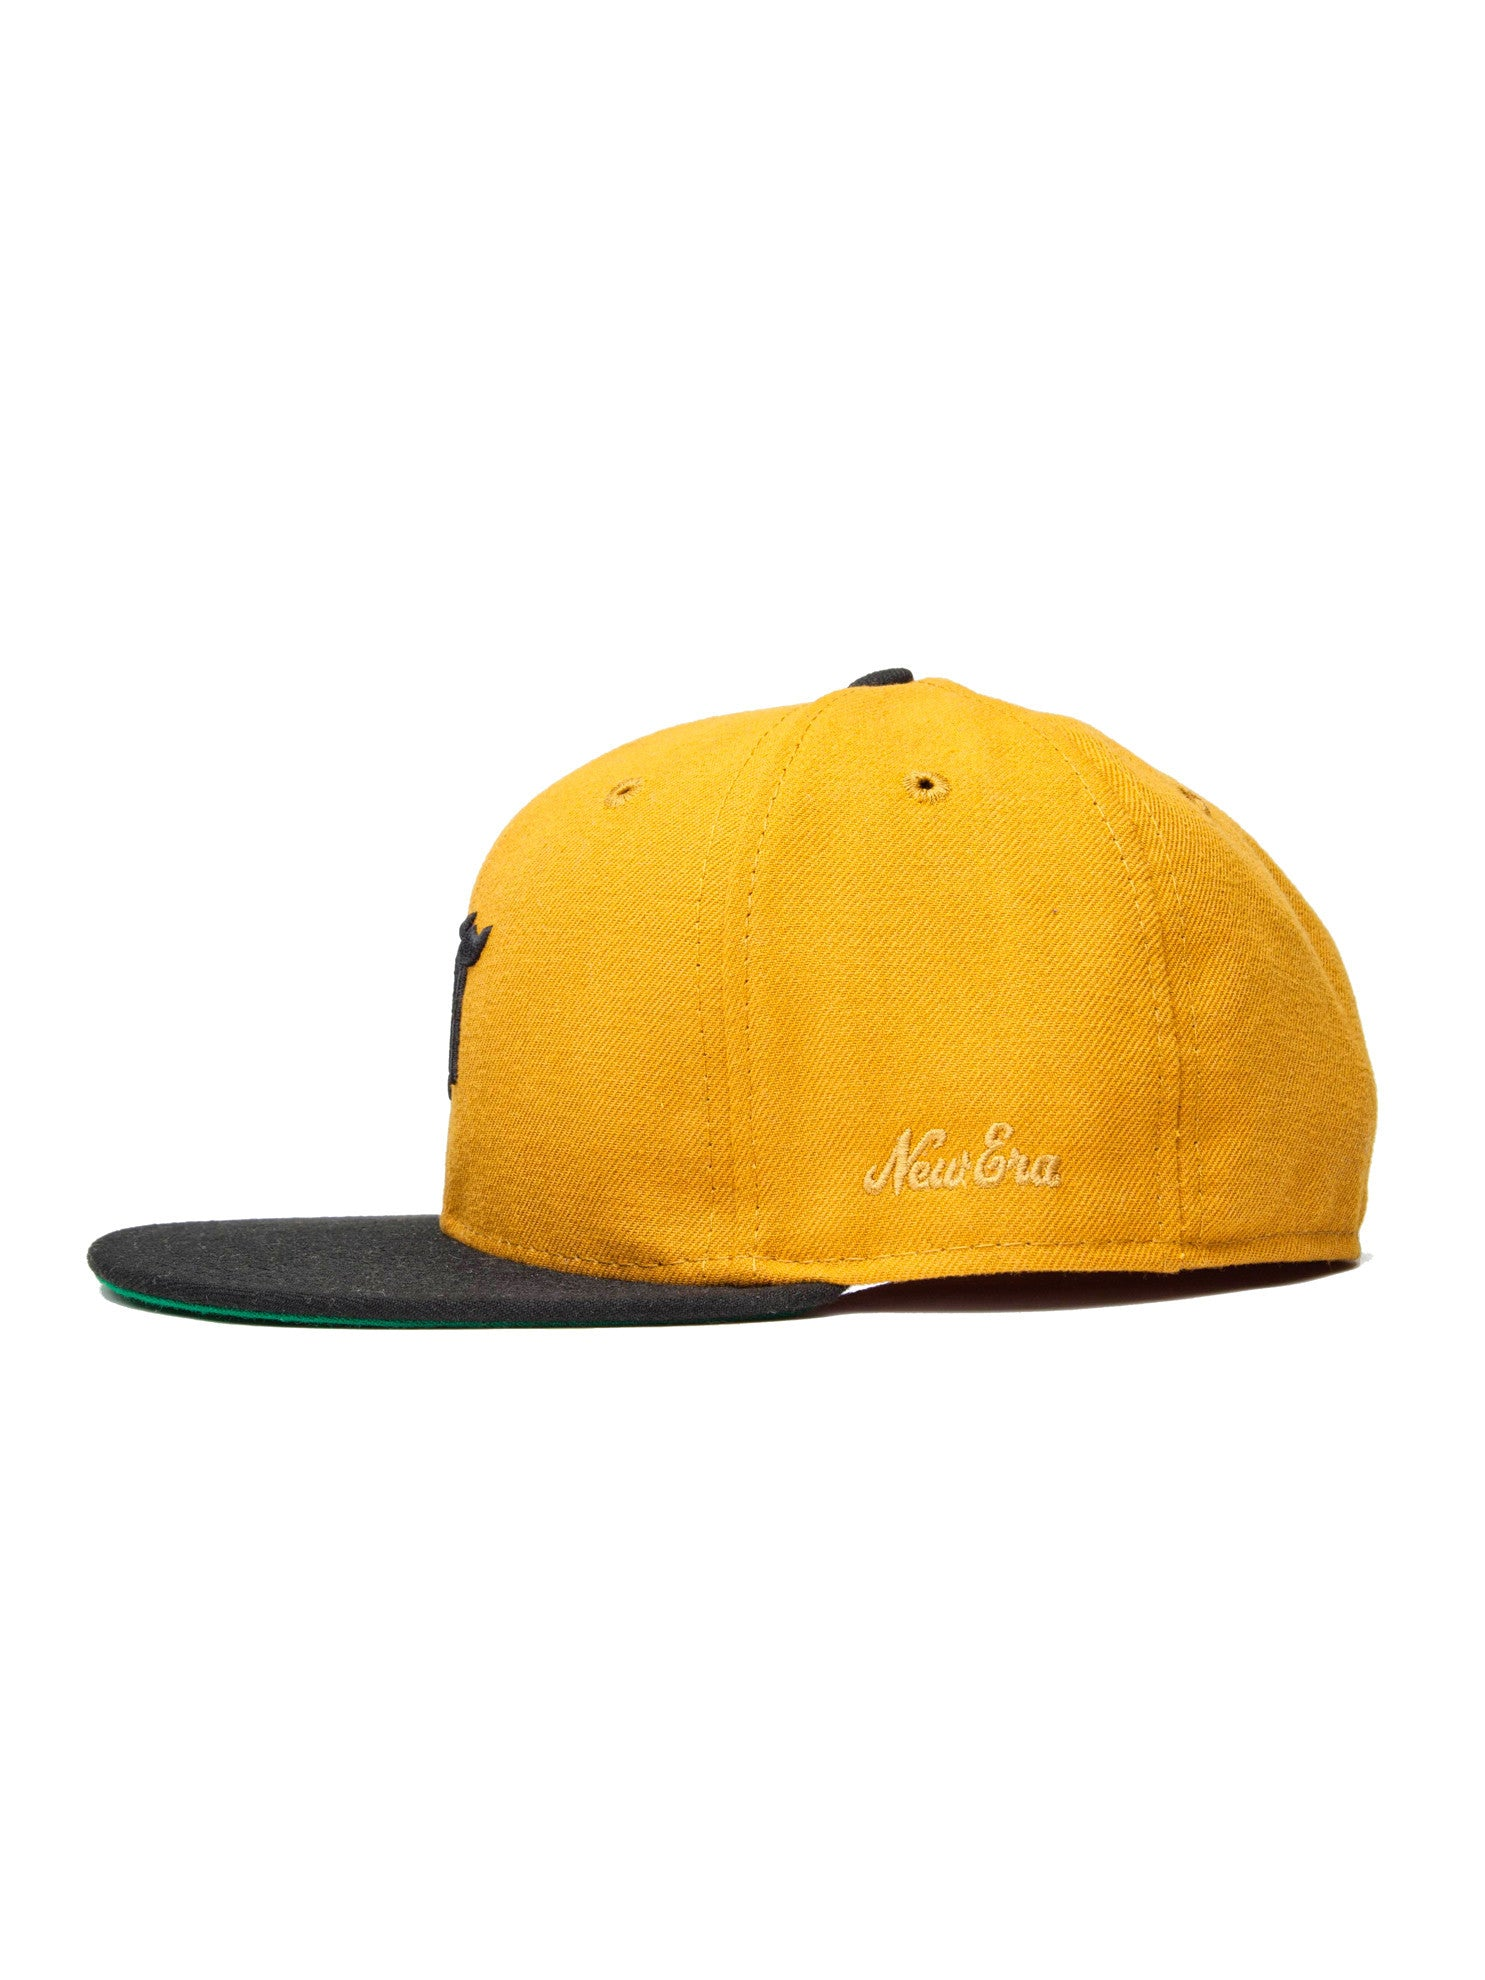 Gold New Era Fitted Cap (59FIFTY) 2